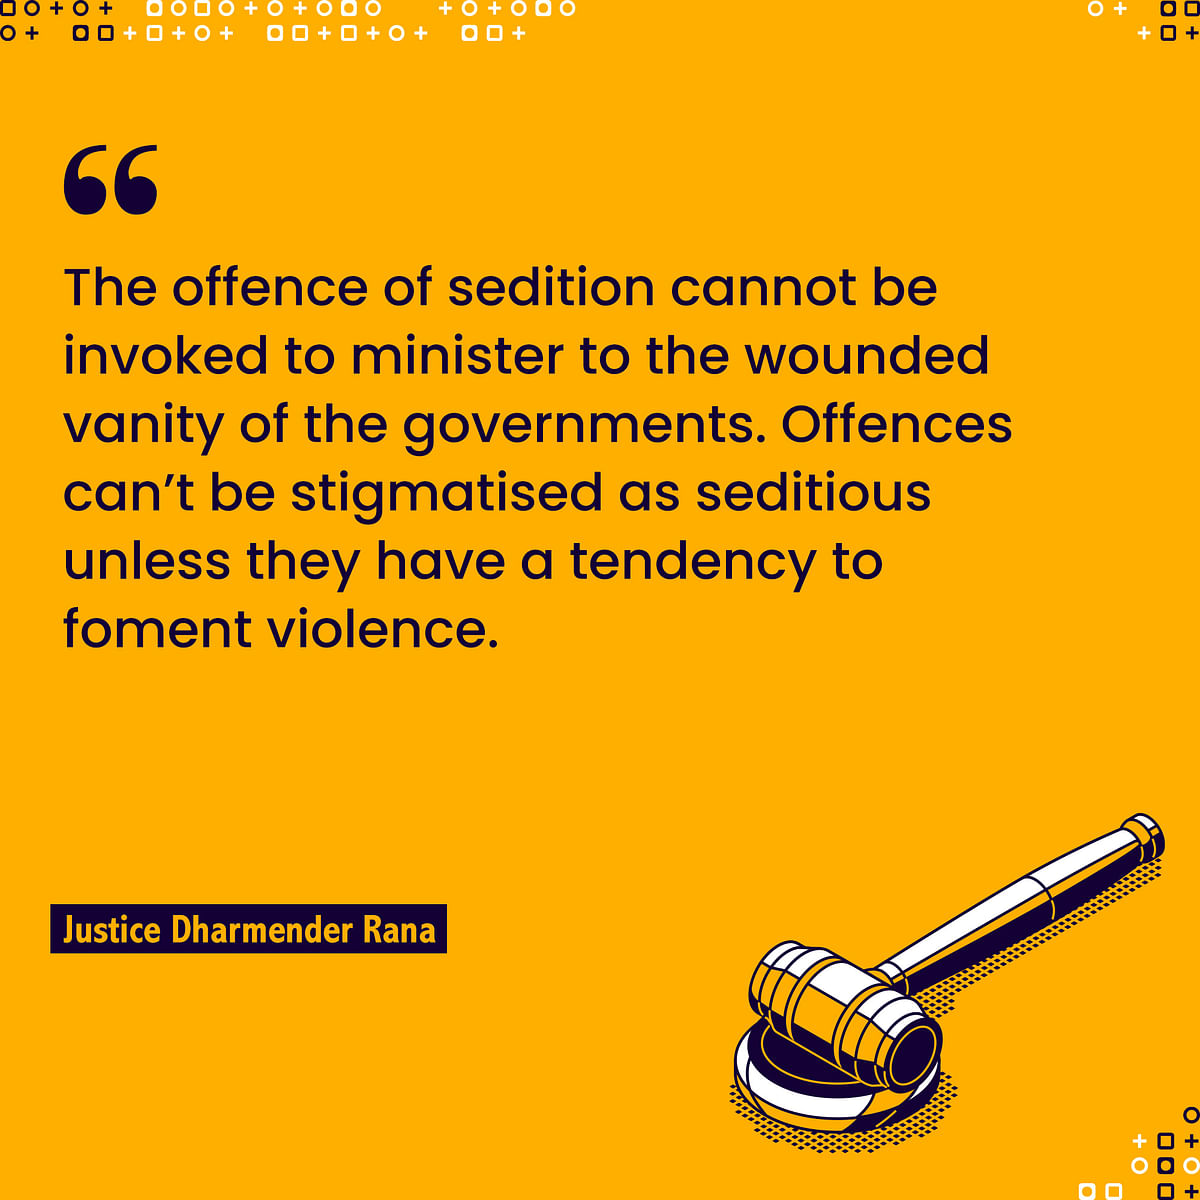 Disha Ravi Bail: Lessons for Govt on Sedition, Freedom, Dissent